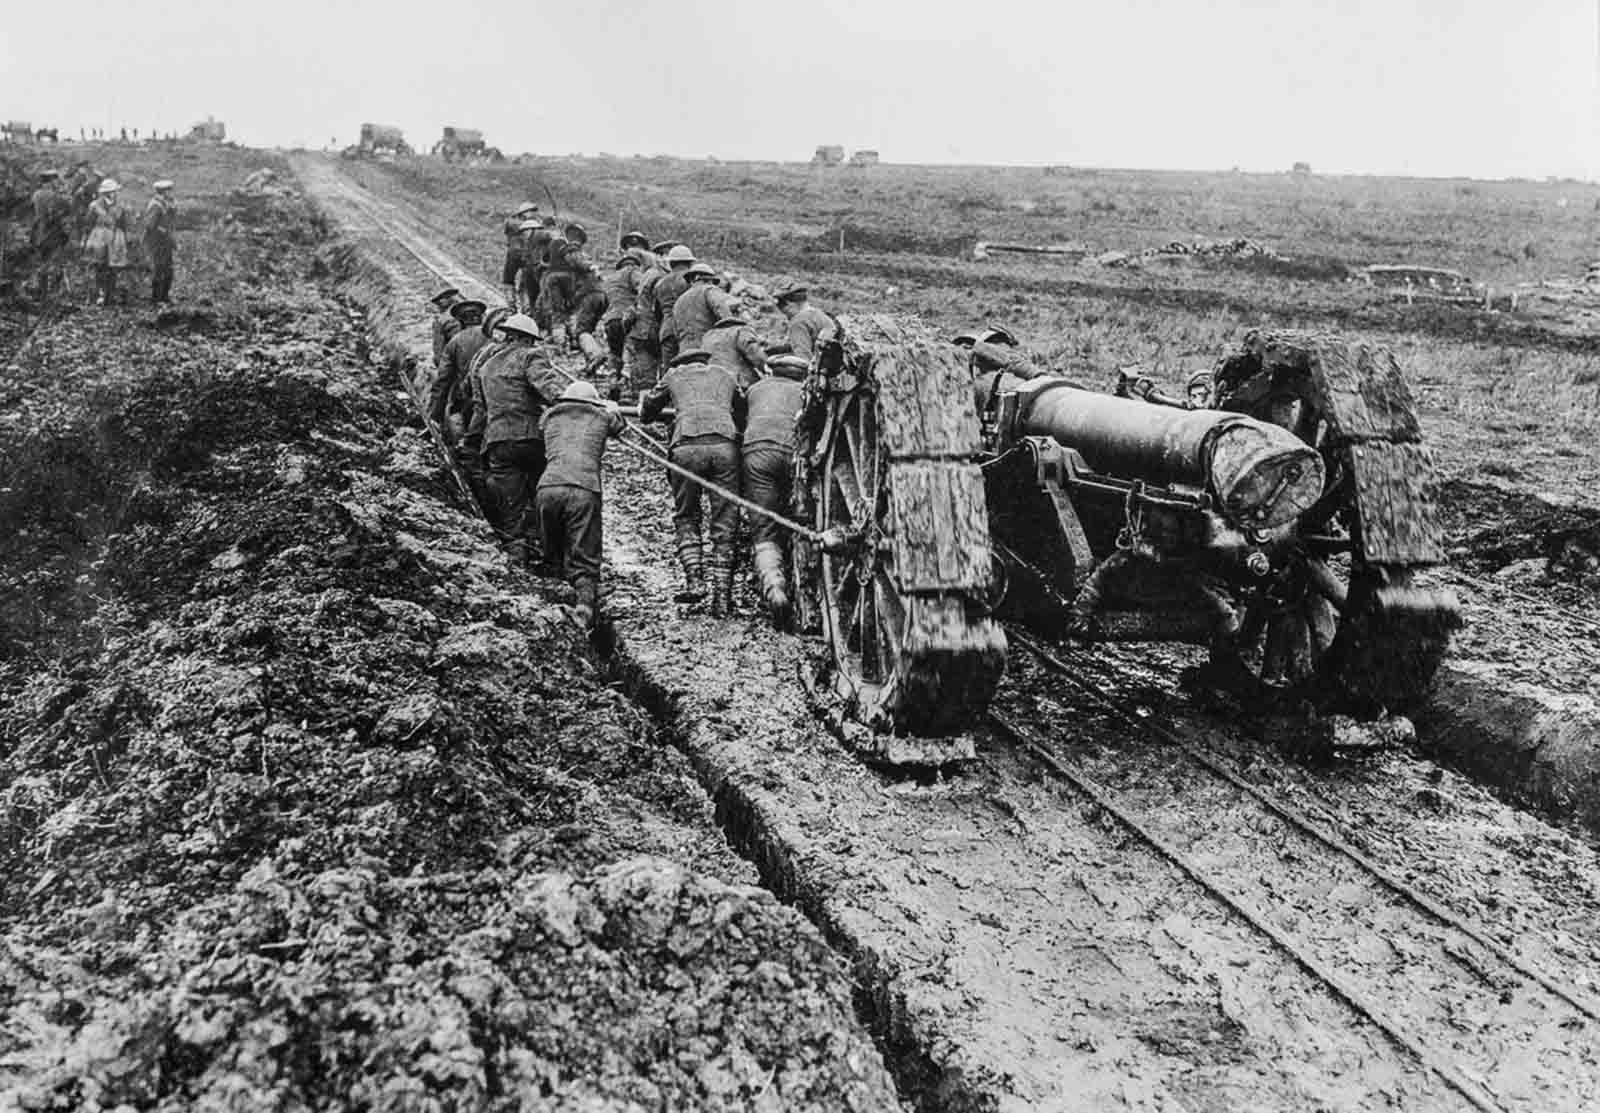 A 6-inch howitzer is hauled through the mud near Pozieres. September, 1916.